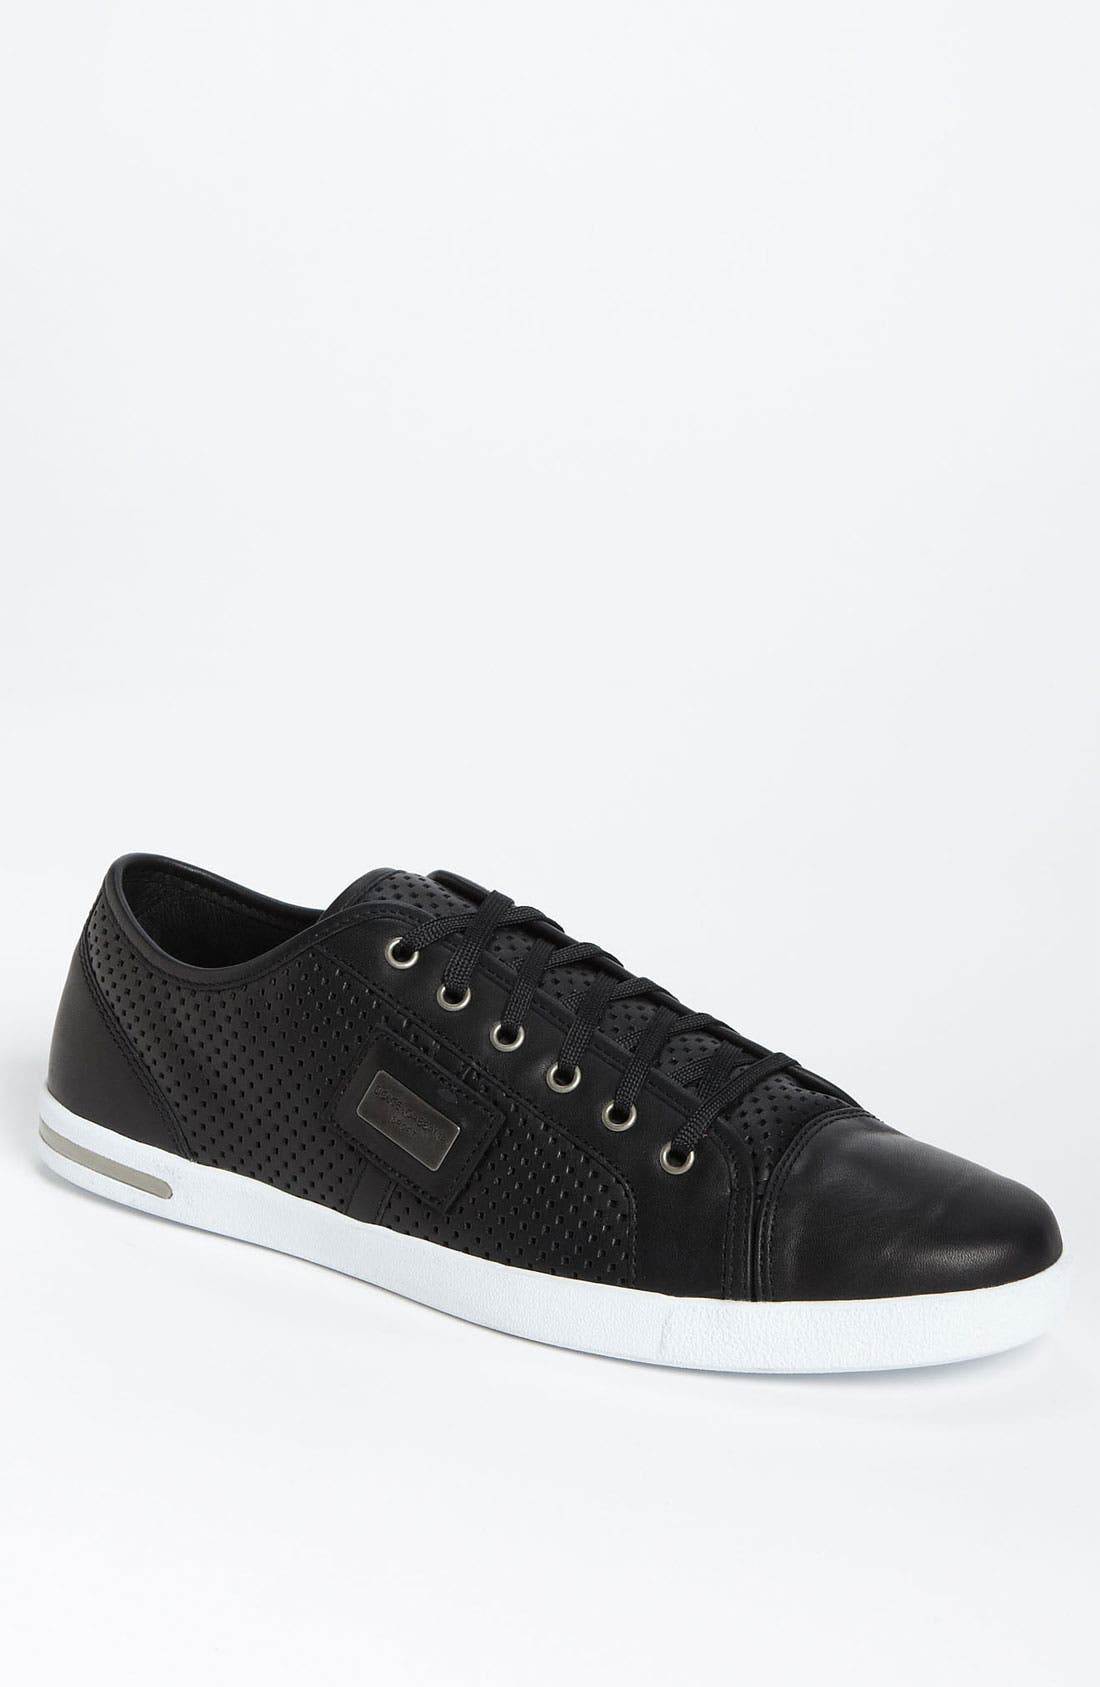 Main Image - Dolce&Gabbana Perforated Sneaker